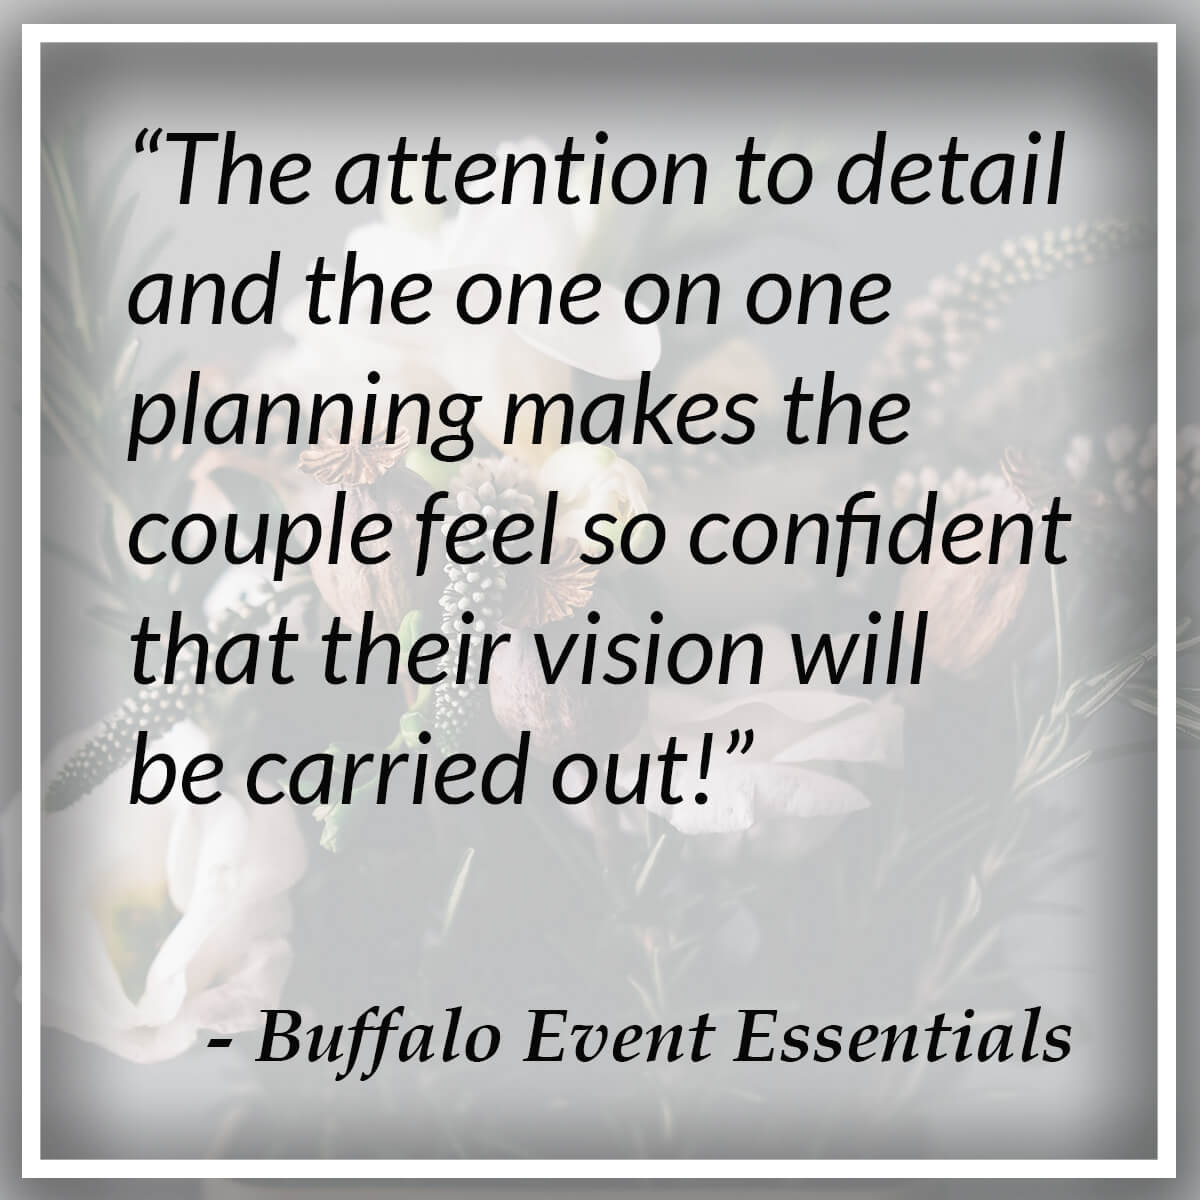 The attention to detail and the one on one planning makes the couple feel so confident that their vision will be carried out! - Buffalo Event Essentials